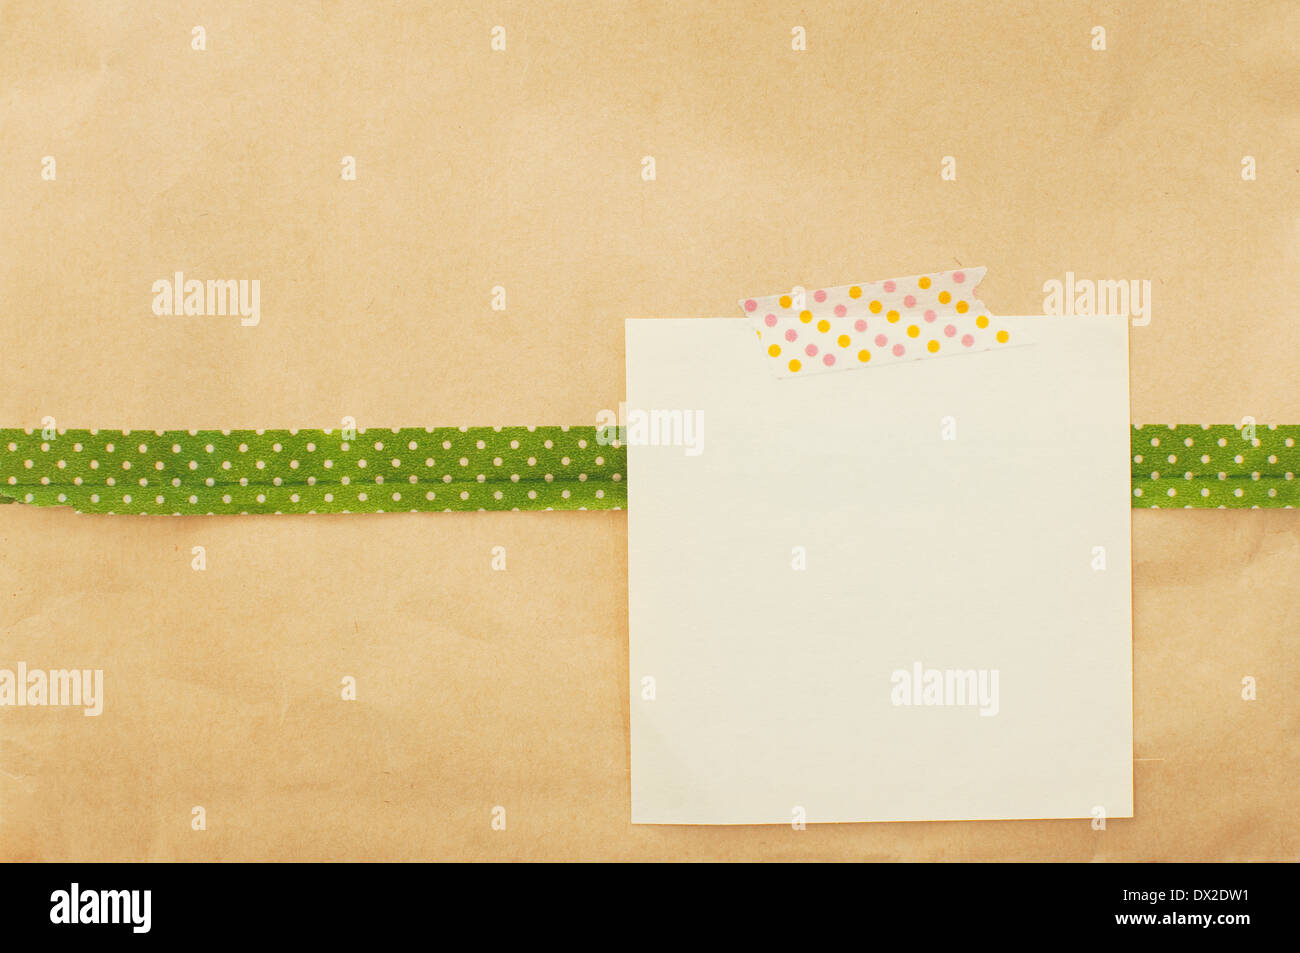 Memo Card On A Craft Paper Background Stock Photo 67666957 Alamy